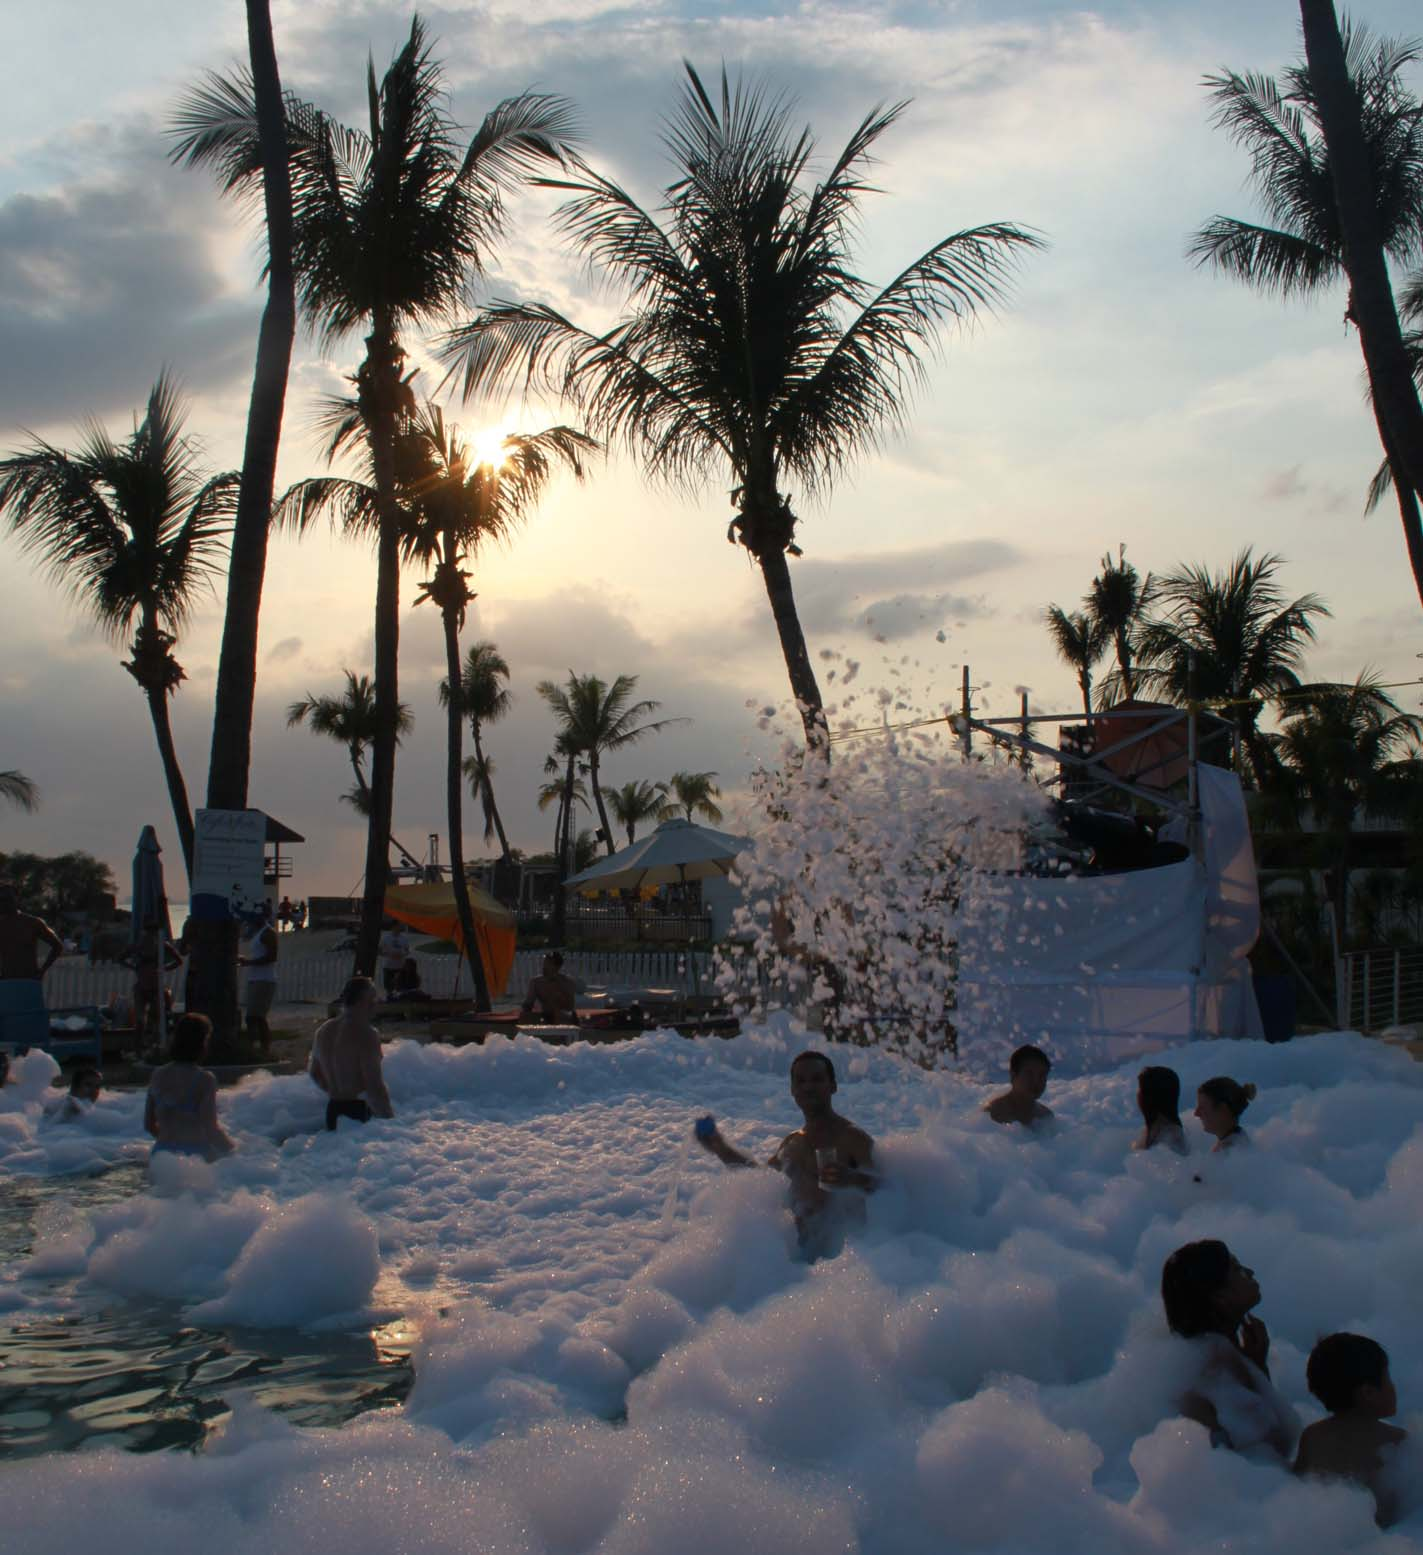 Foam Party at Cafe del Mar